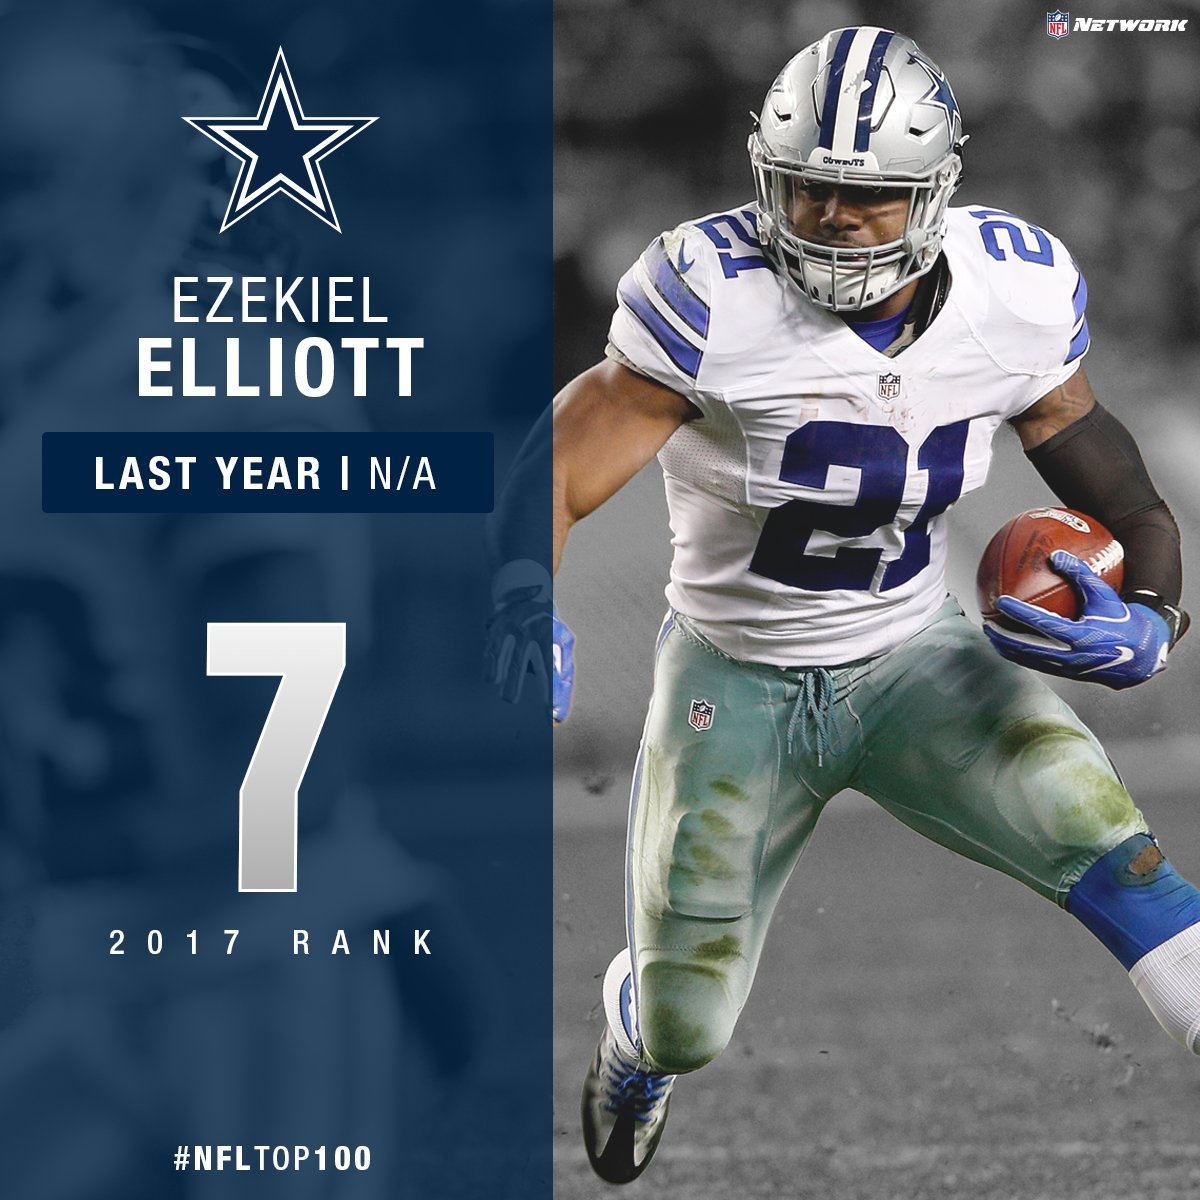 .@EzekielElliott is the highest voted player from the 2016 rookie clas...